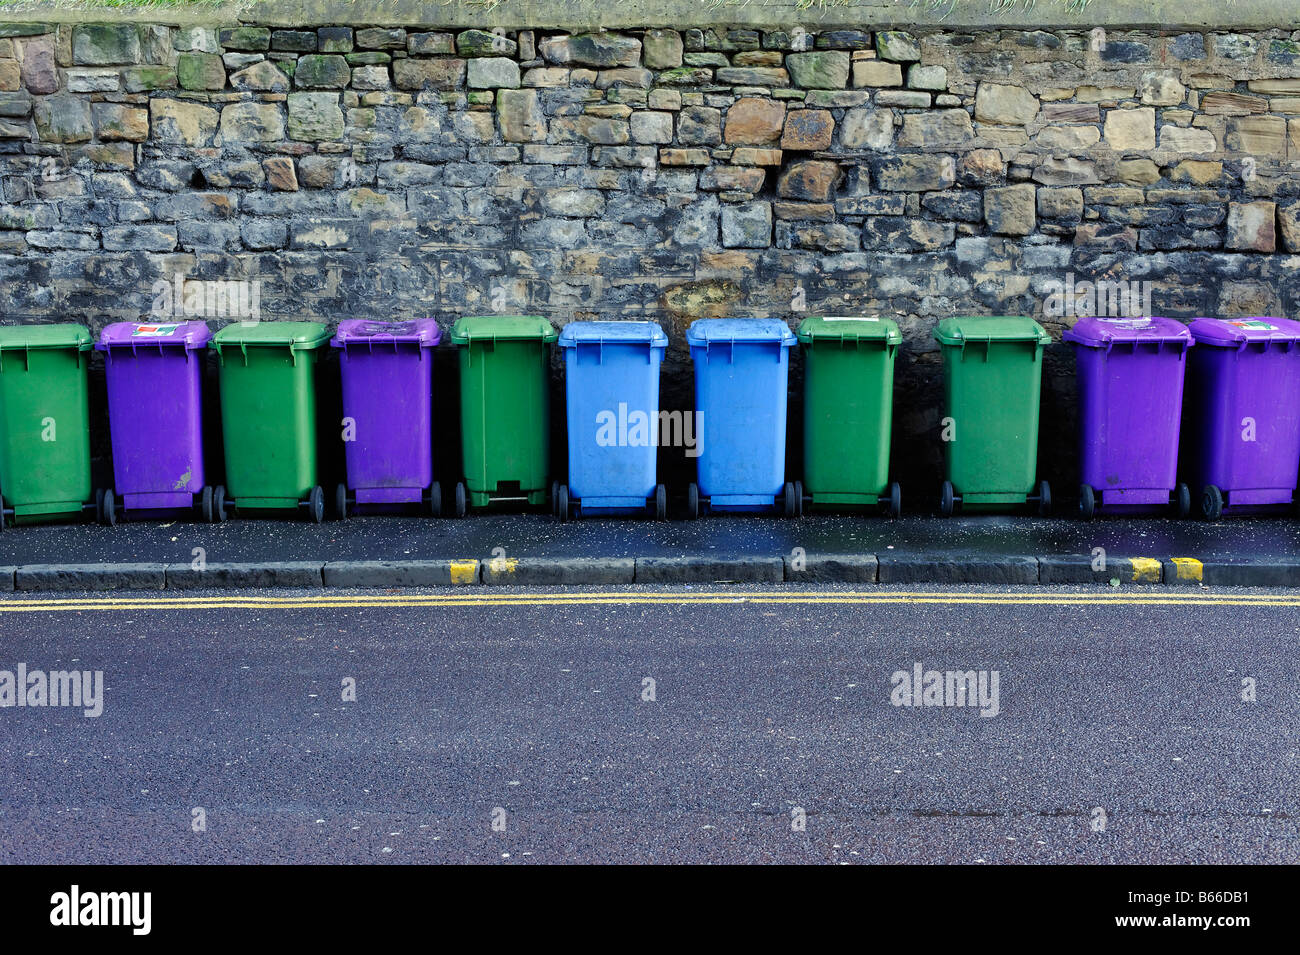 Line of multicoloured recycling bins lined up in front of a stone wall Stock Photo